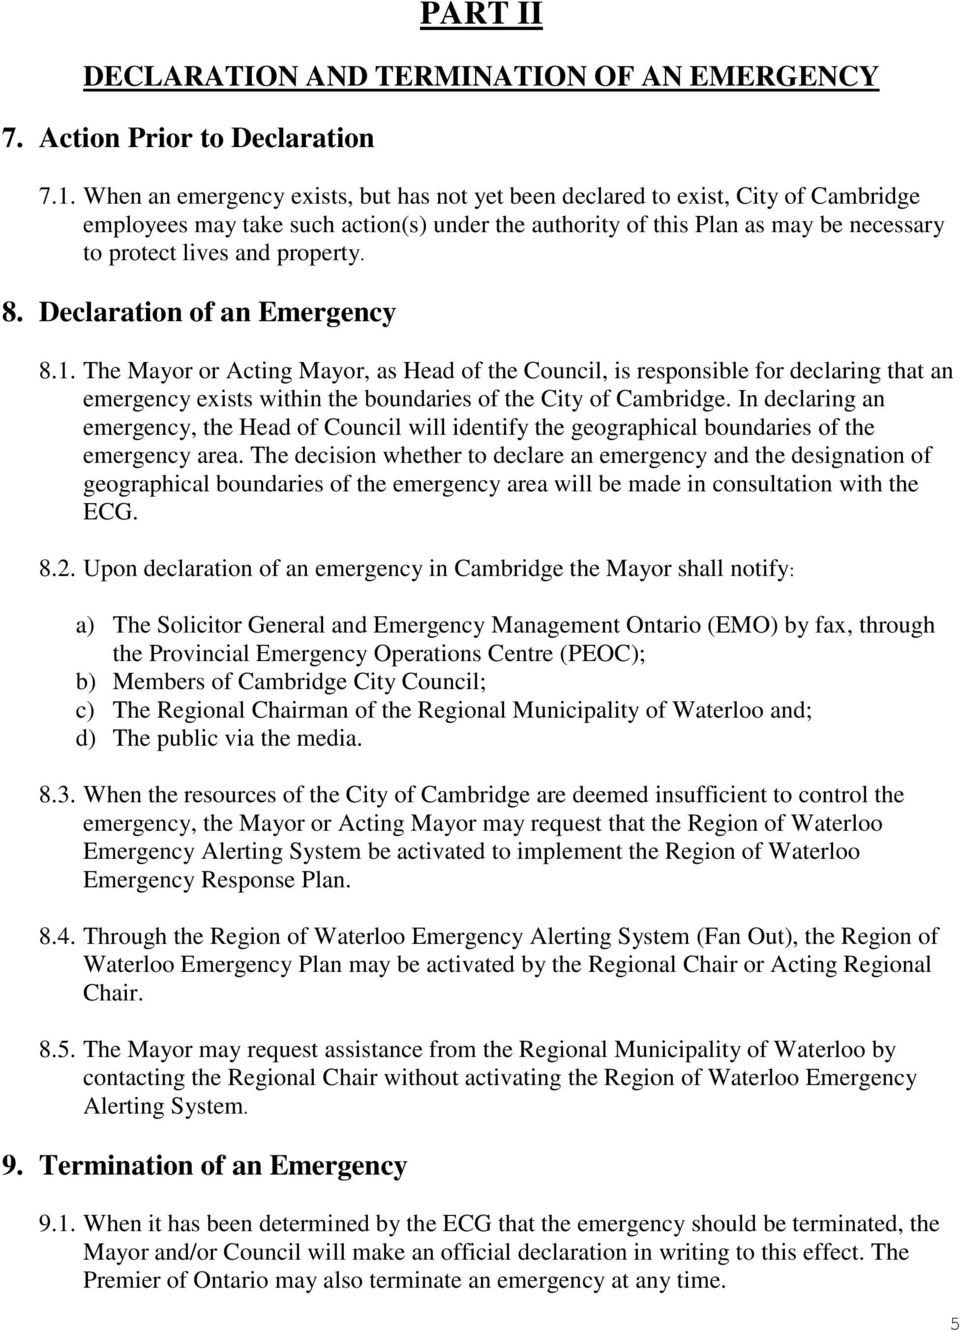 property. 8. Declaration of an Emergency 8.1. The Mayor or Acting Mayor, as Head of the Council, is responsible for declaring that an emergency exists within the boundaries of the City of Cambridge.